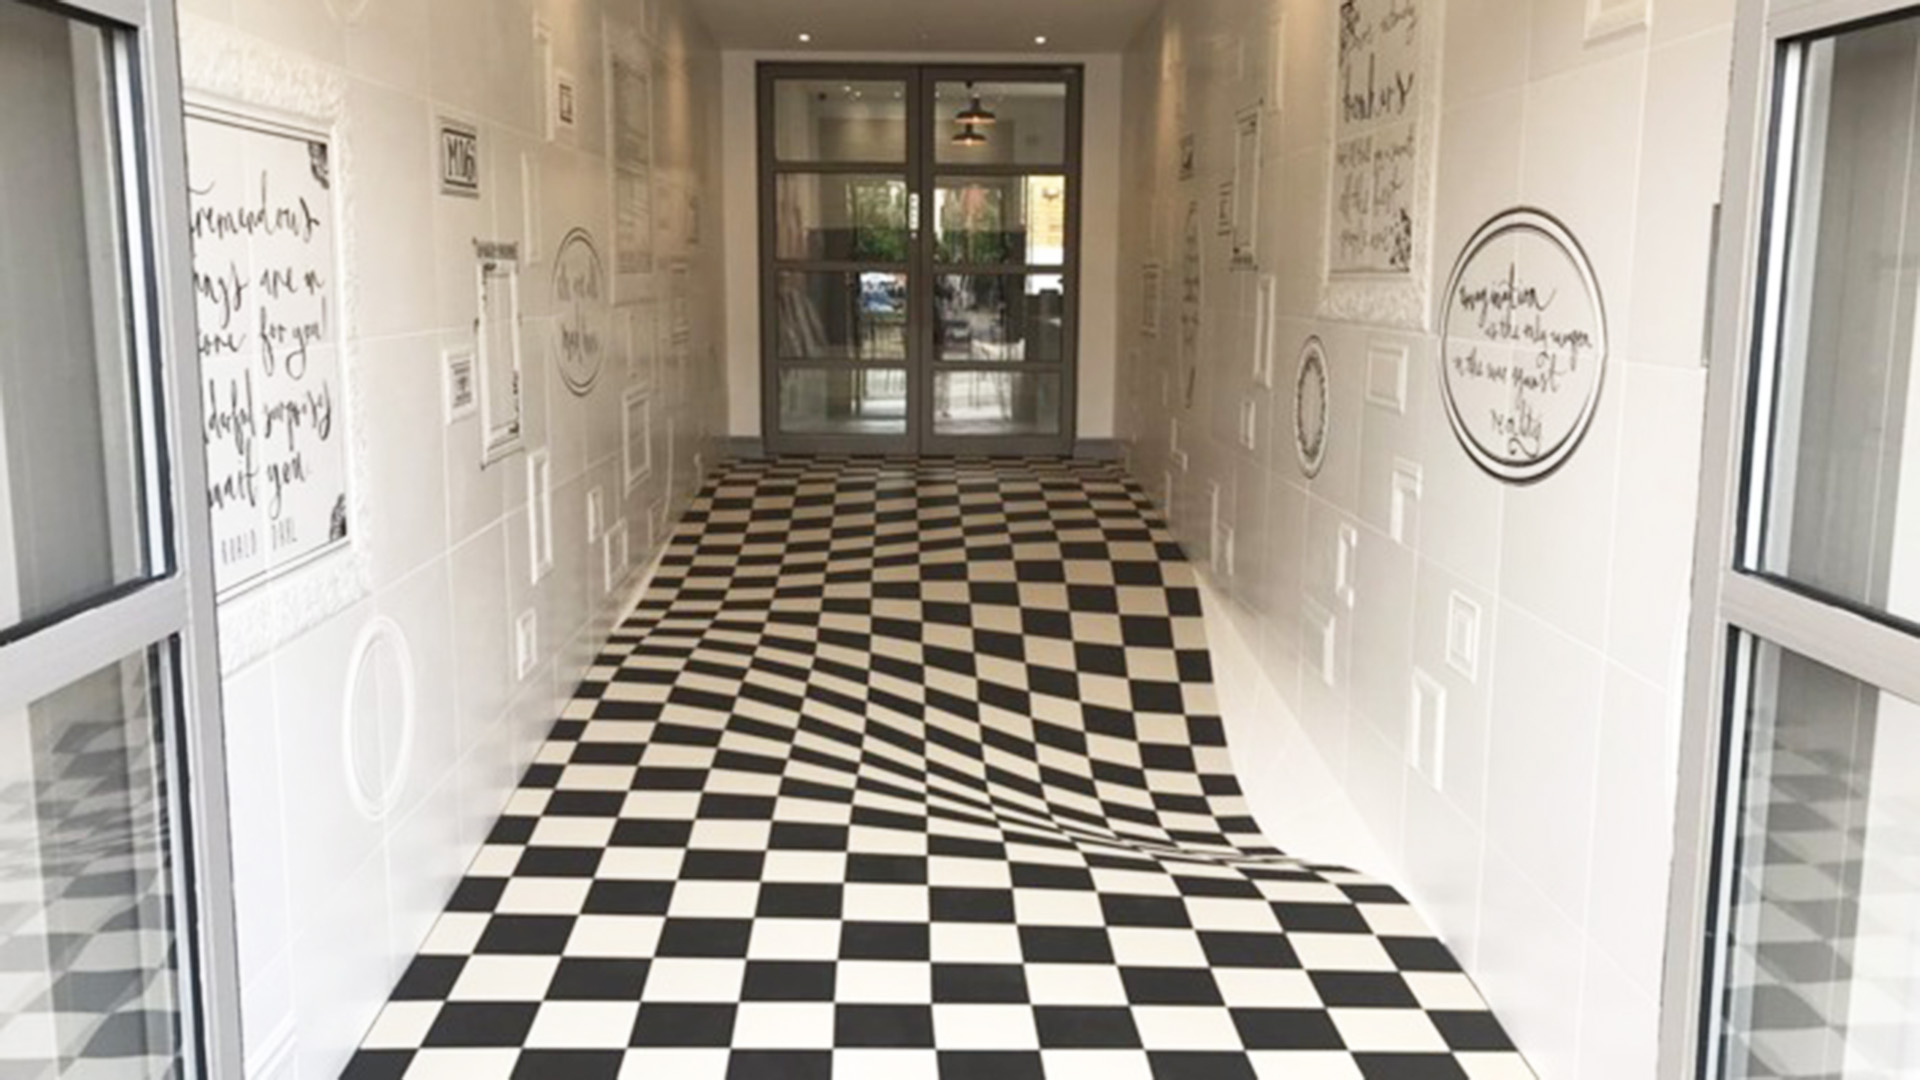 This tile company\'s floor is a wild optical illusion - TODAY.com